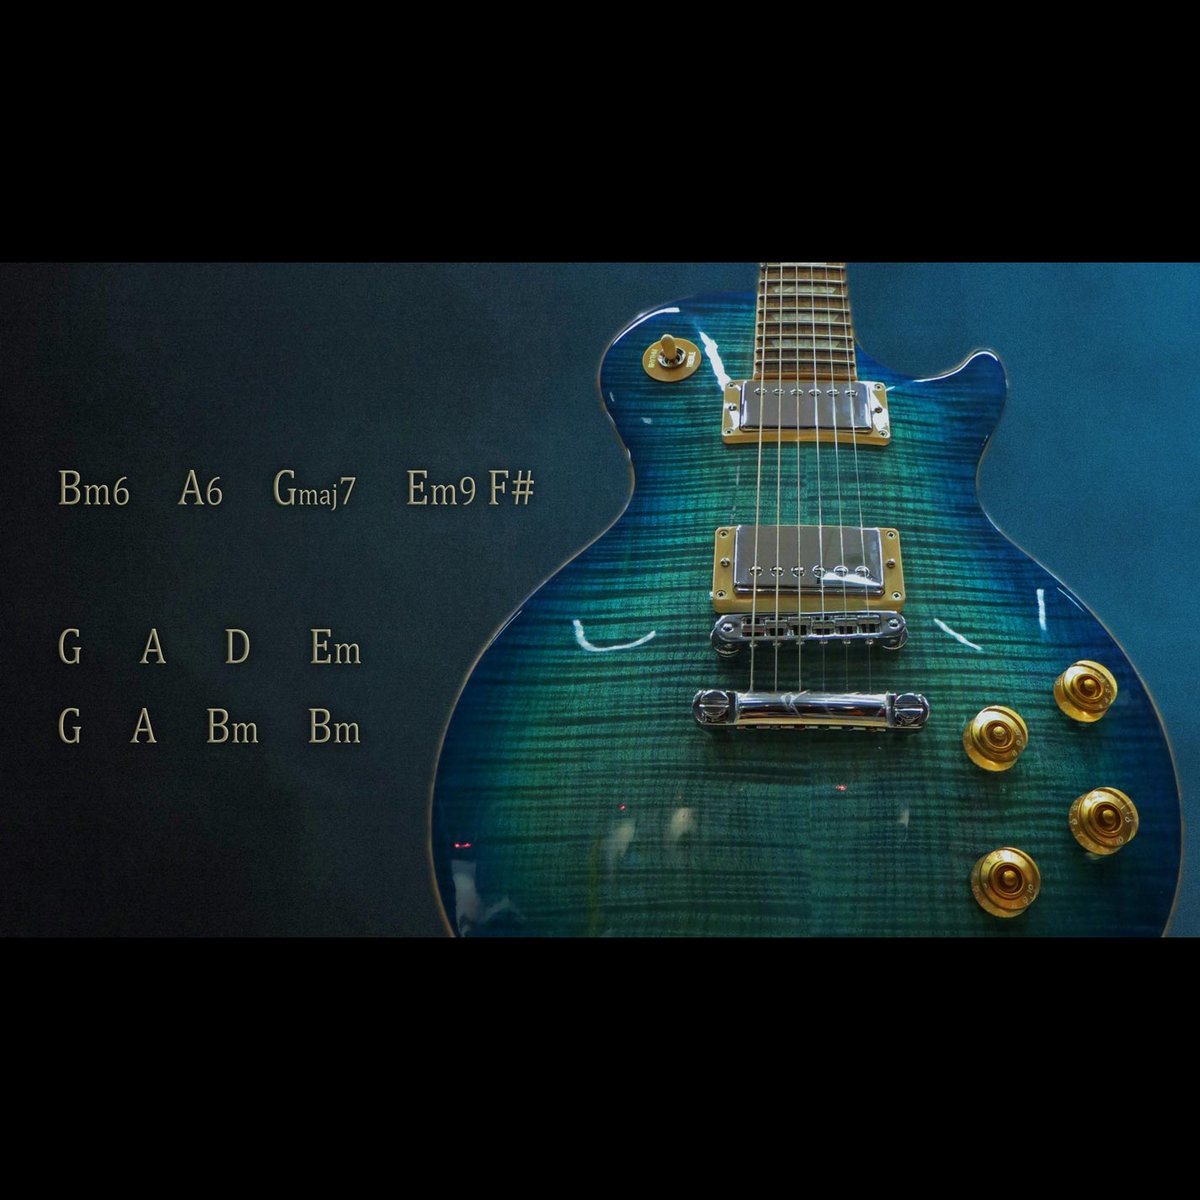 slow electric guitar ballad backing track b minor nick neblo. Black Bedroom Furniture Sets. Home Design Ideas